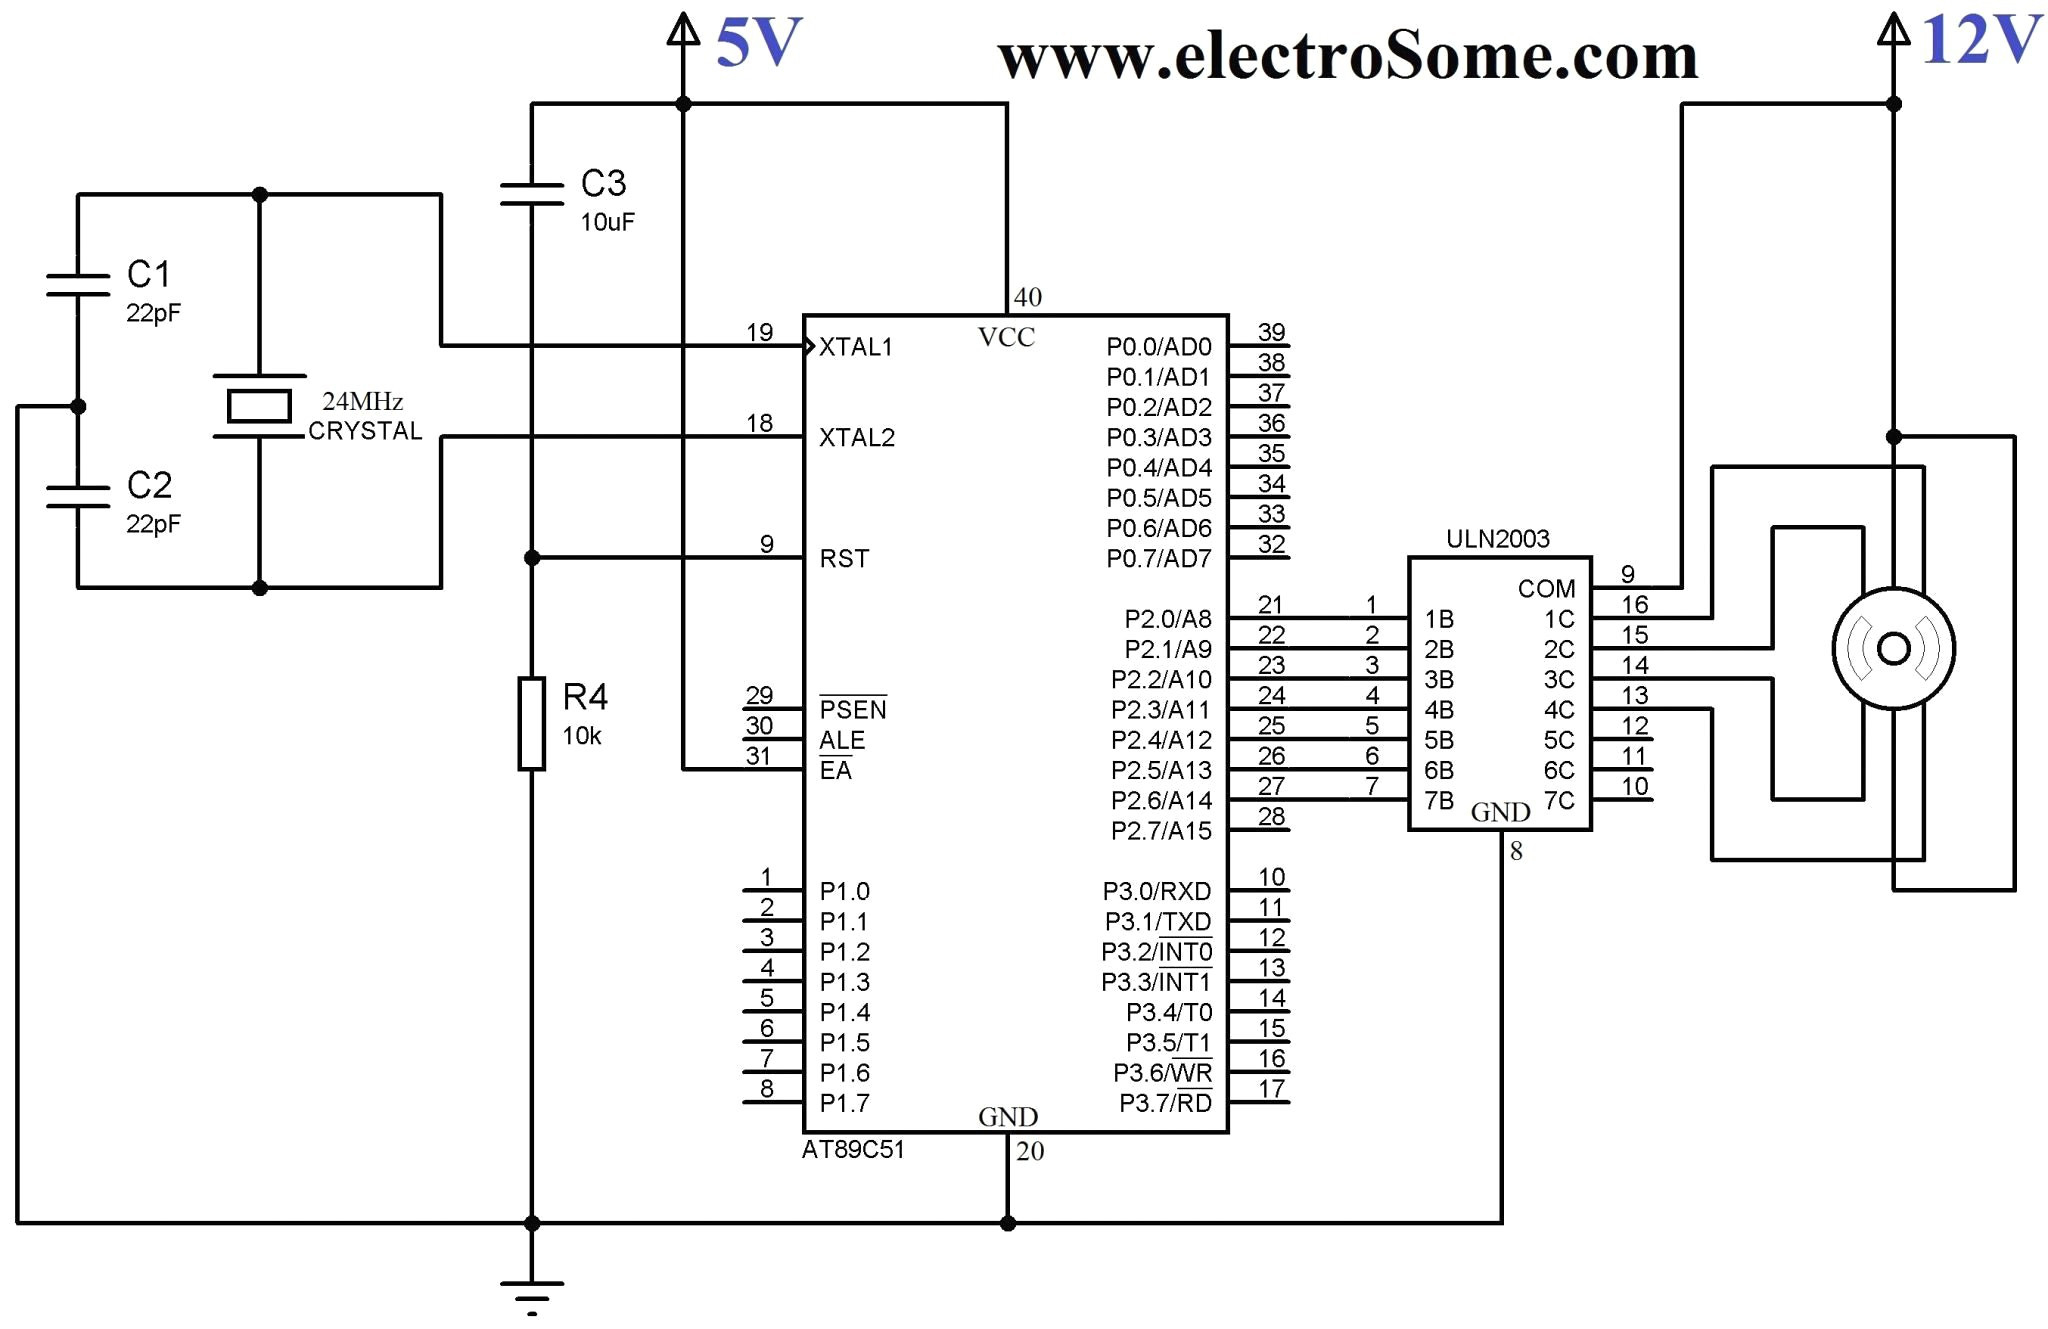 j 380 circuit board wiring diagram 240 volt photocell    wiring       diagram    download  240 volt photocell    wiring       diagram    download